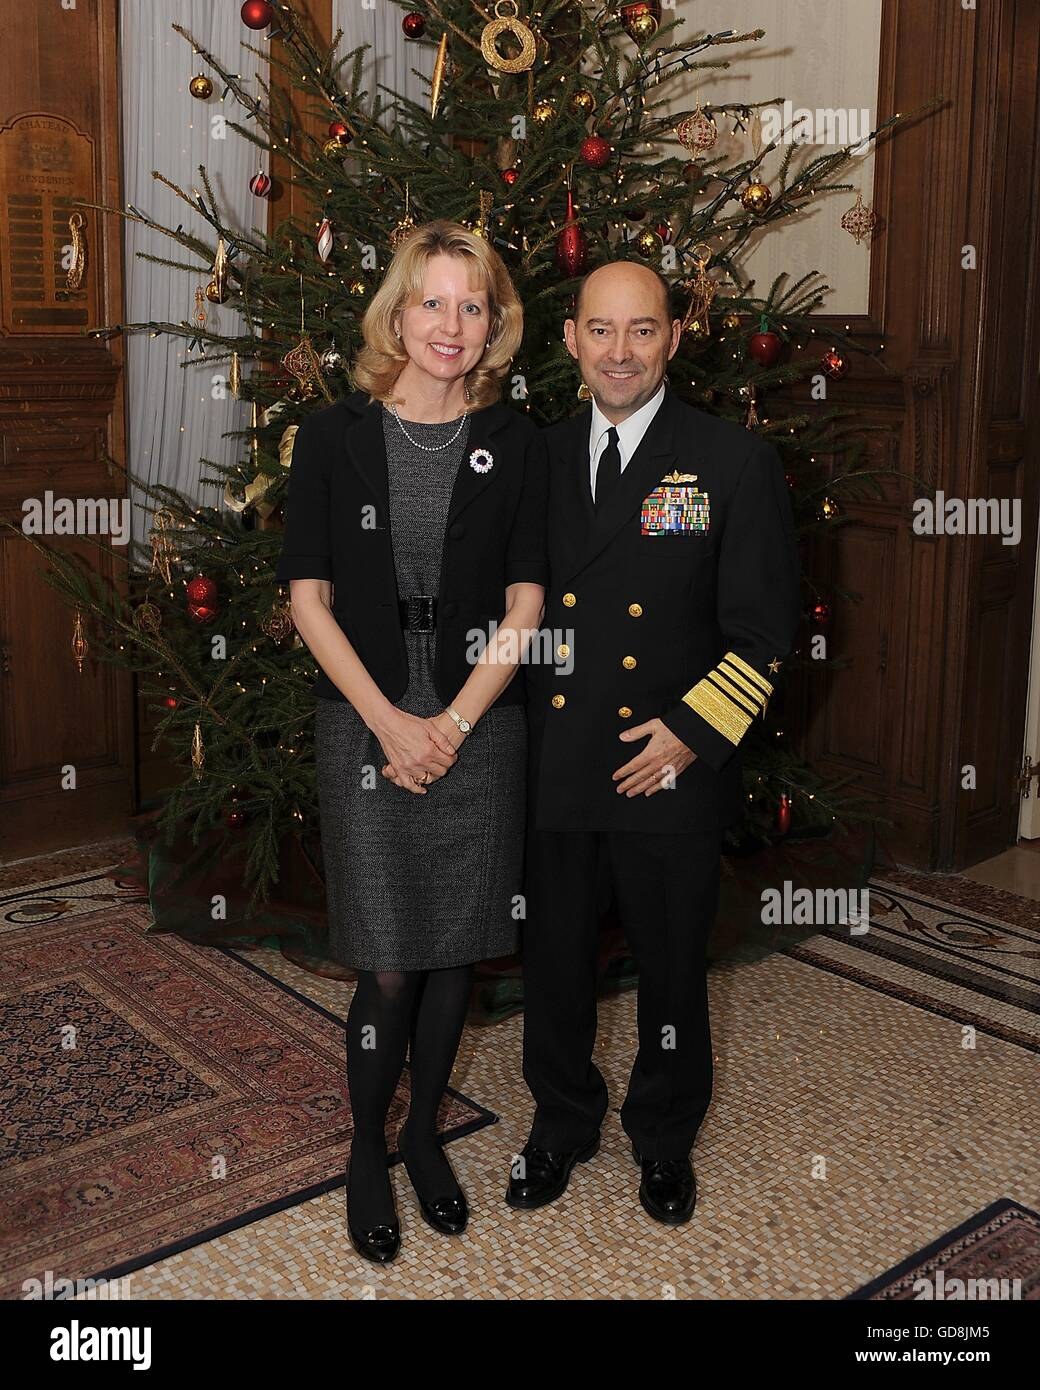 U.S Adm. James Stavridis, European Command and NATO Supreme Allied Commander, accompanied by his wife Laura during - Stock Image